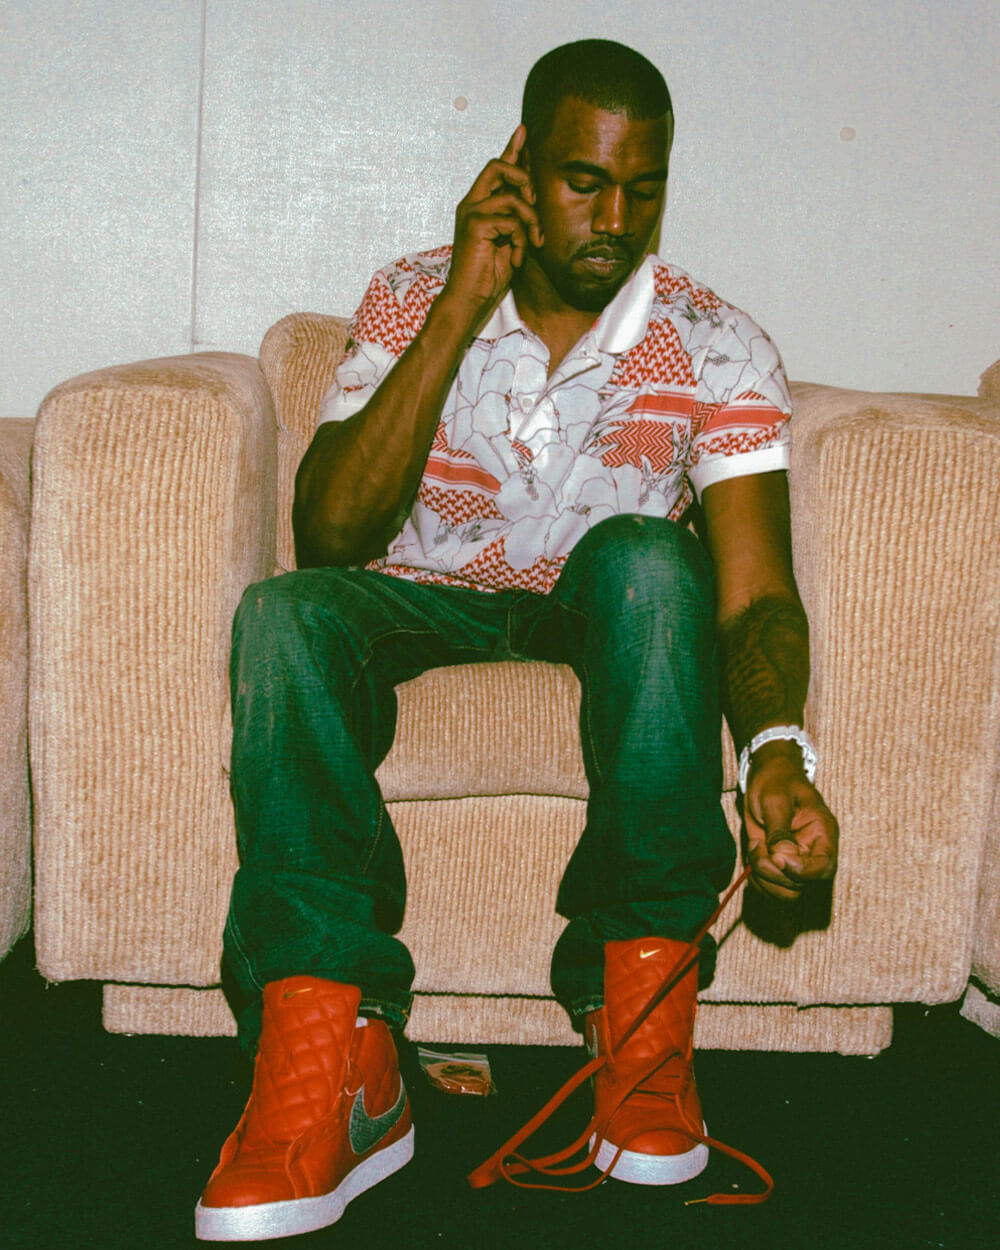 Kanye West at the Grammy Foundations Starry Night